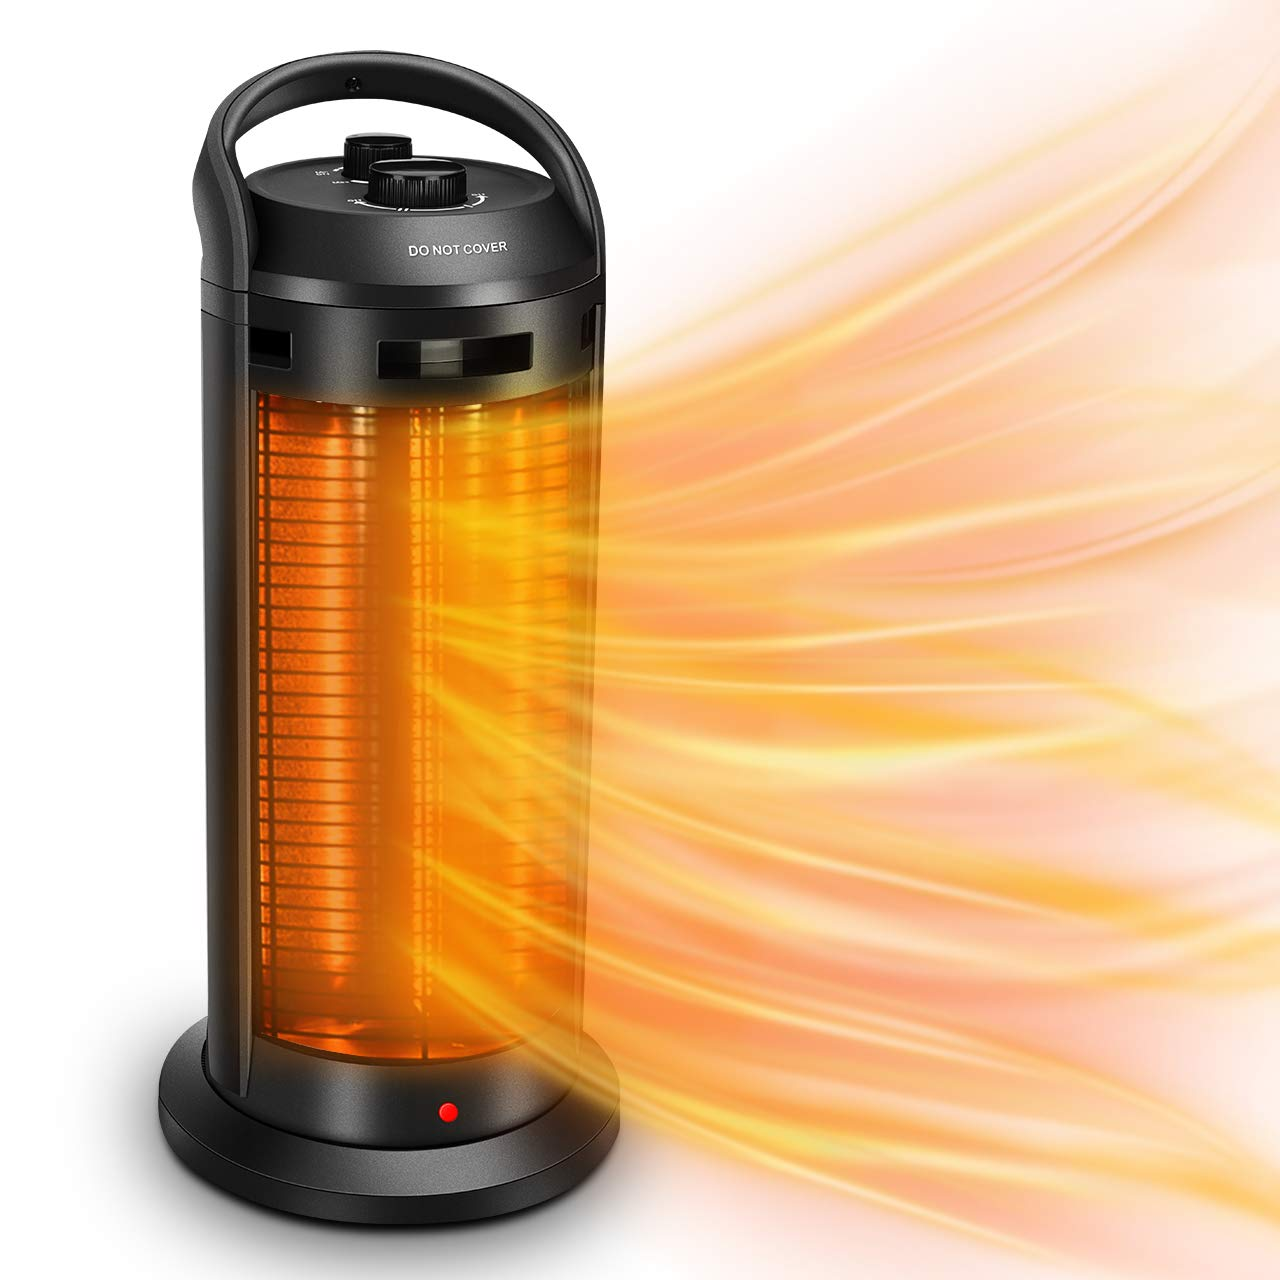 TRUSTECH Space Radiant Heater – Infrared Heater, Adjustable Electric Heater 1500W w 4 Heating Modes, Outdoor Heater w Tip-Over Overheat Protection, Super Quiet, 3s Heating for Home Office